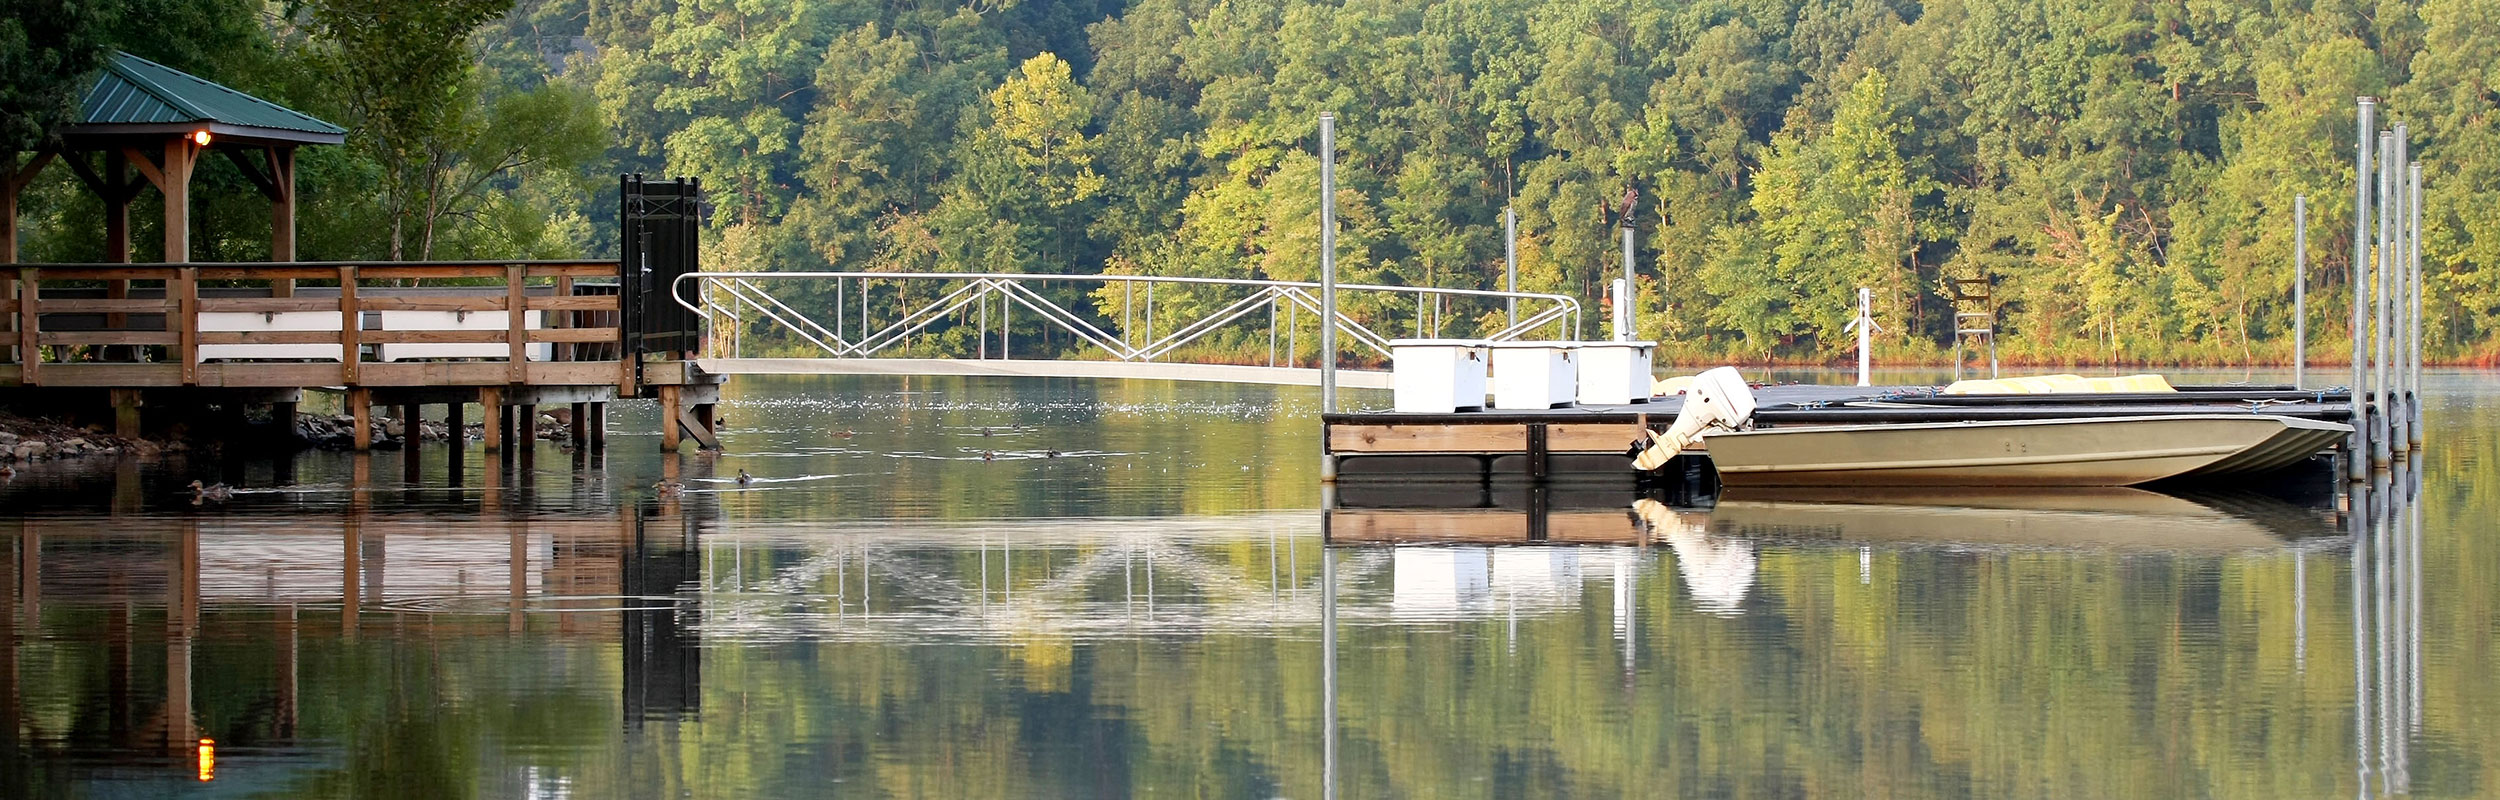 Pier on lake with woods in Cary, North Carolina